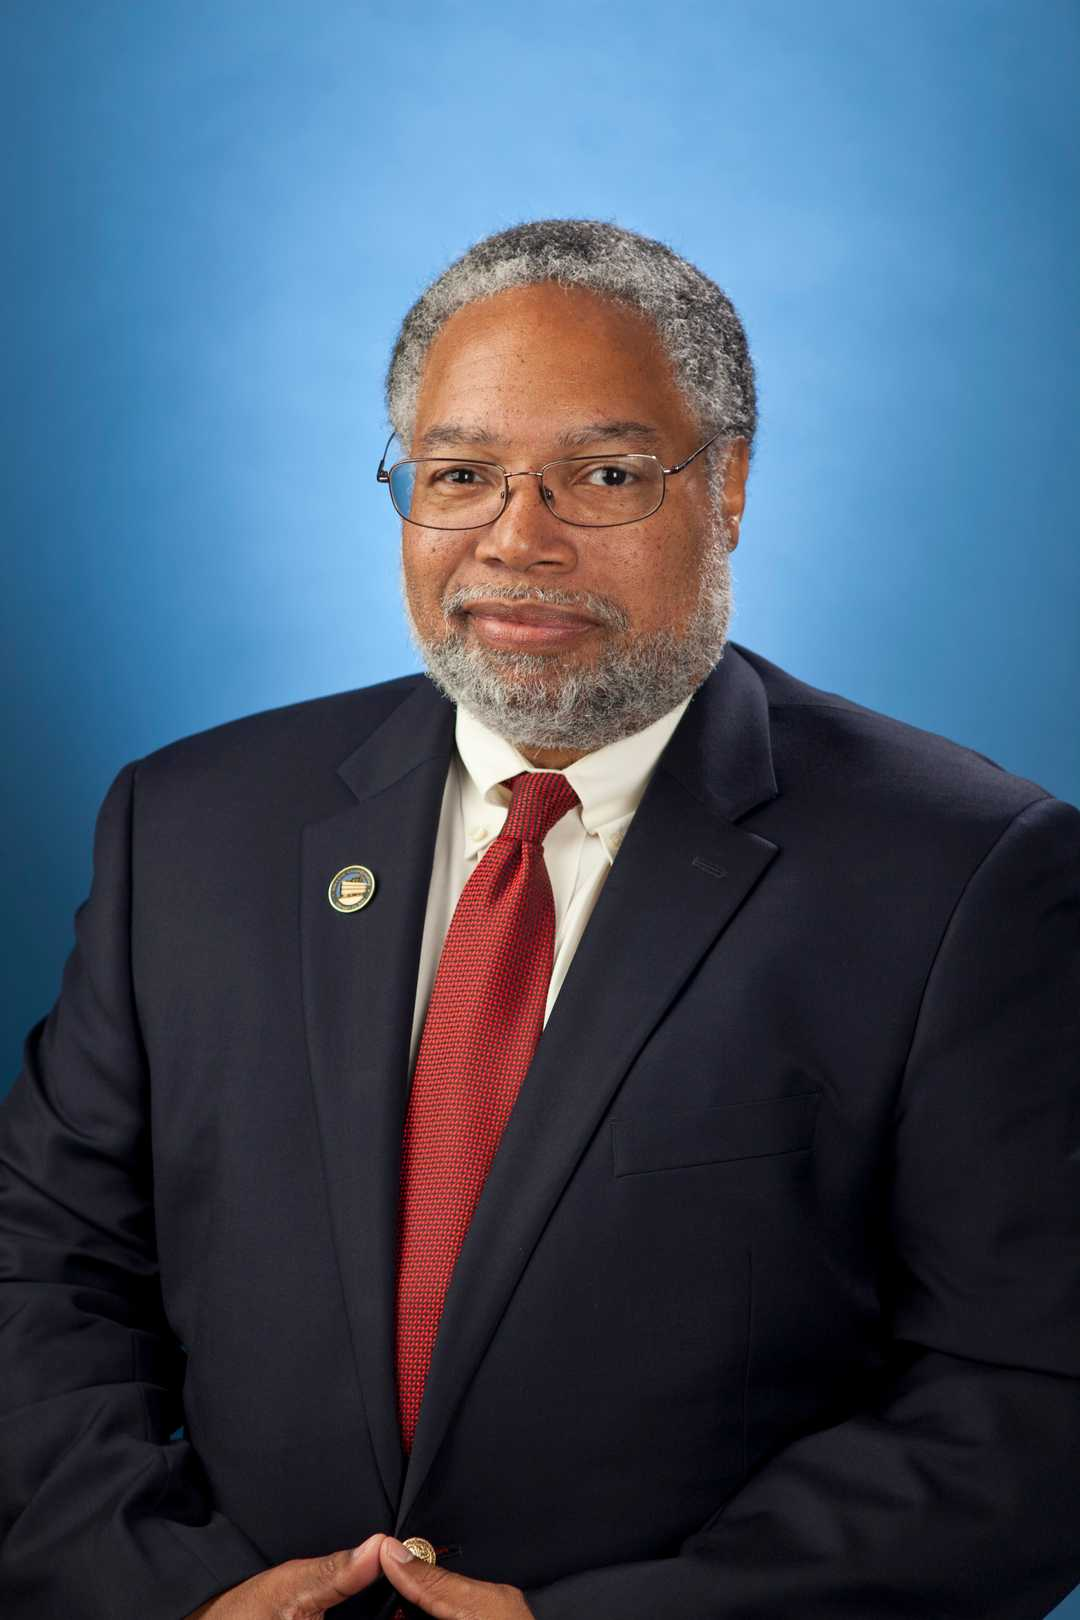 How Lonnie Bunch came to lead it